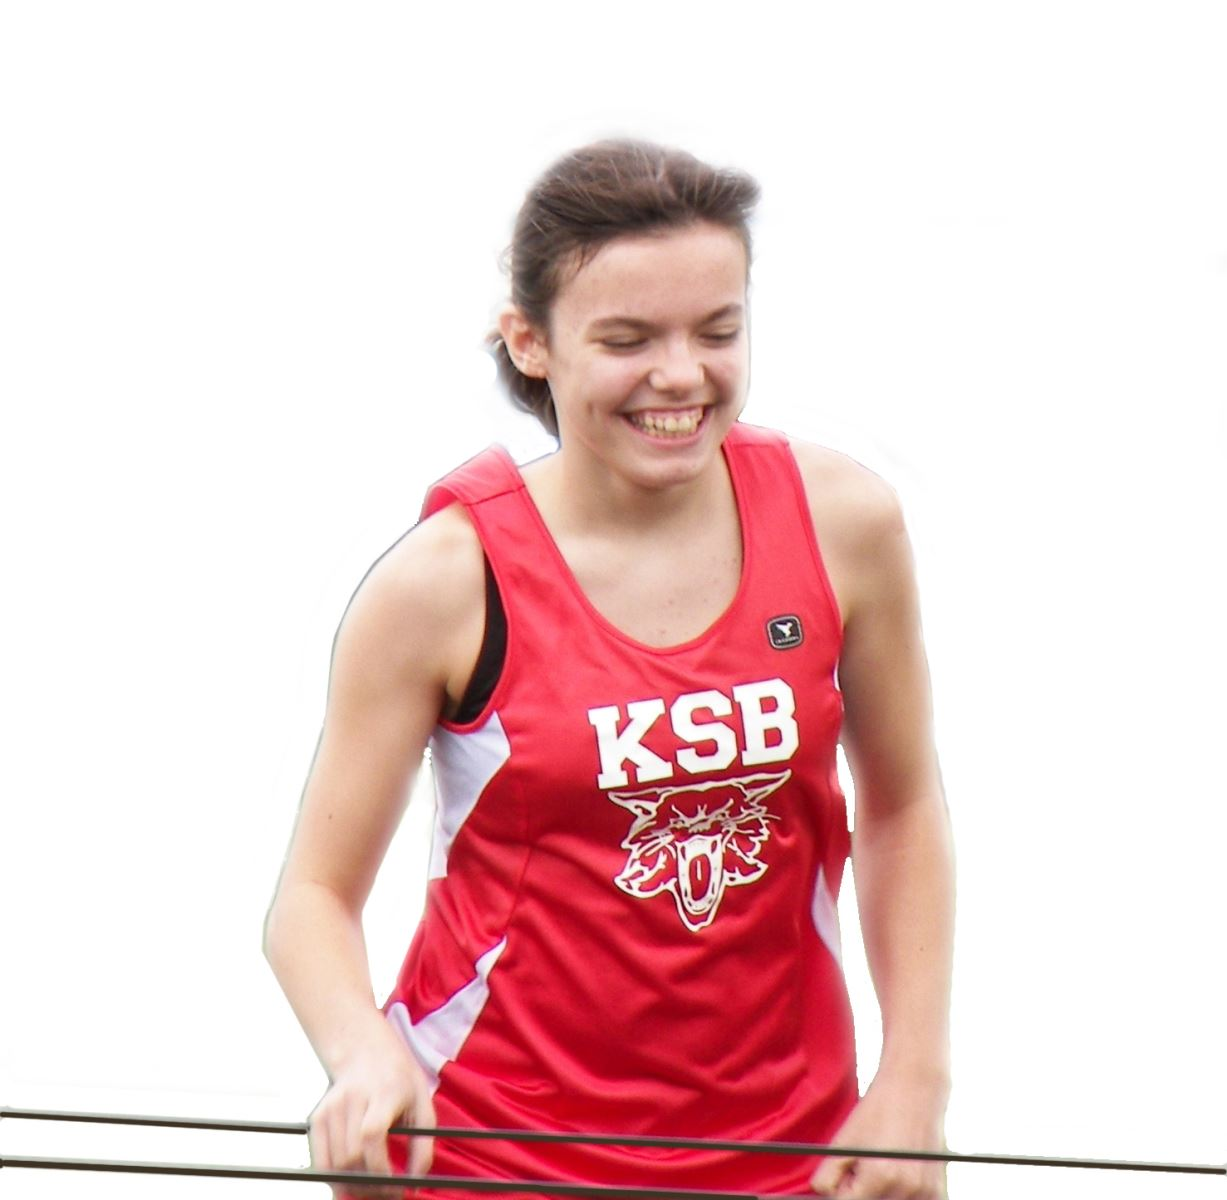 KSB varsity female athlete is holding on to a guide wire while running.  She is wearing a KSB wildcat jersey and has a broad smile on her face.